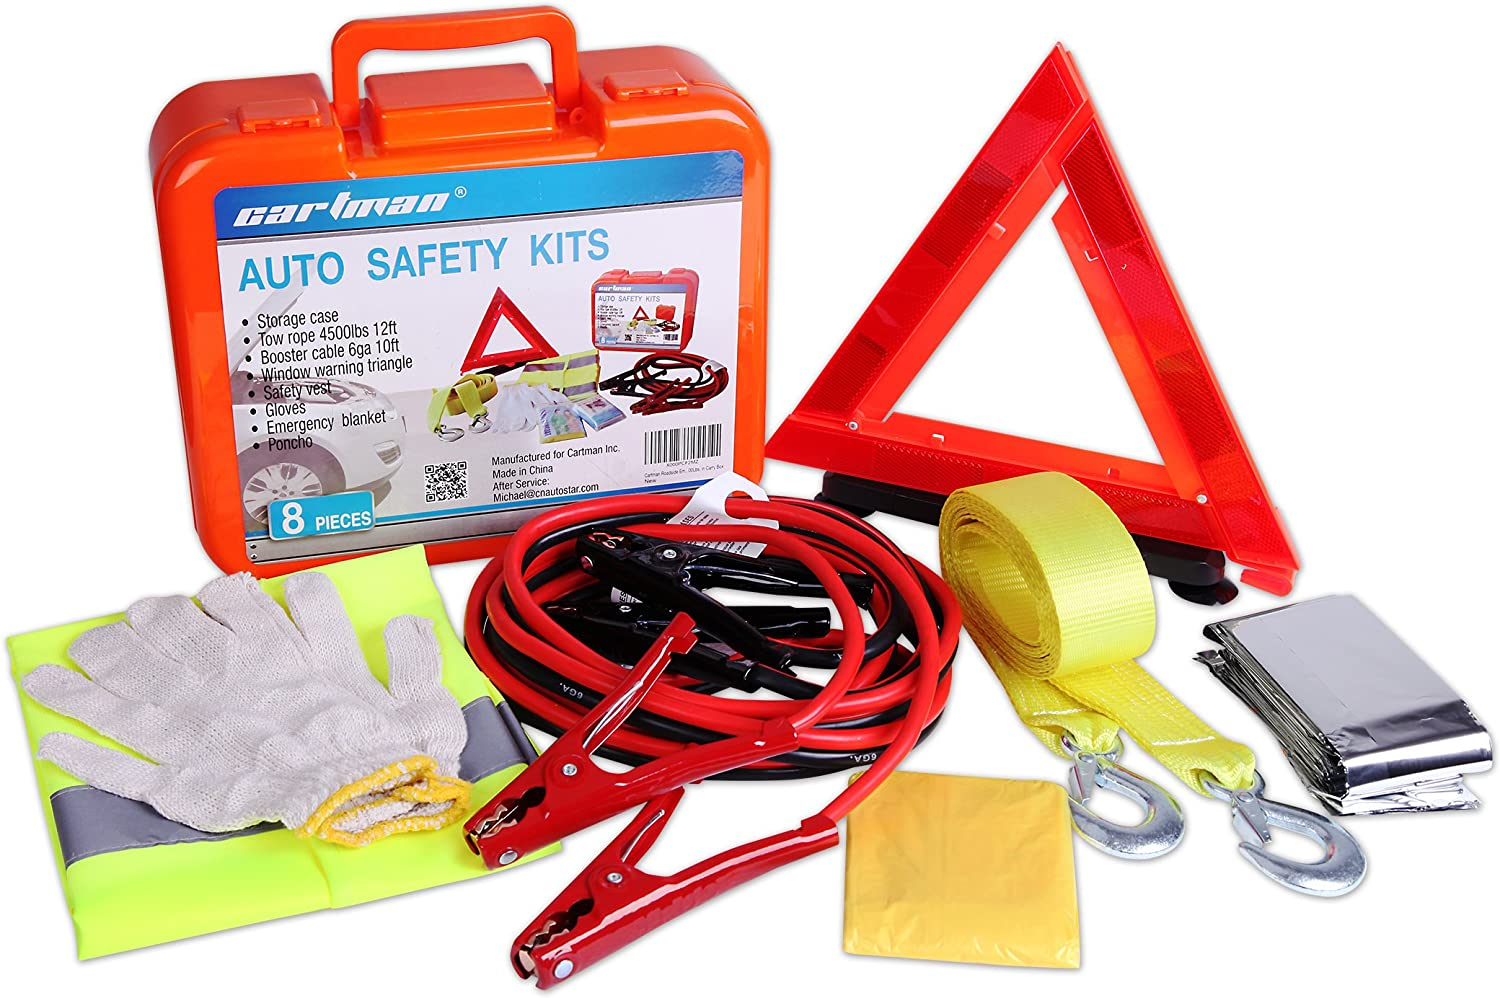 CARTMAN Roadside Assistance Auto Emergency Kit Set, Jump Cables 6Ga + Tow Belt 4500Lbs, in Carry Box: Automotive